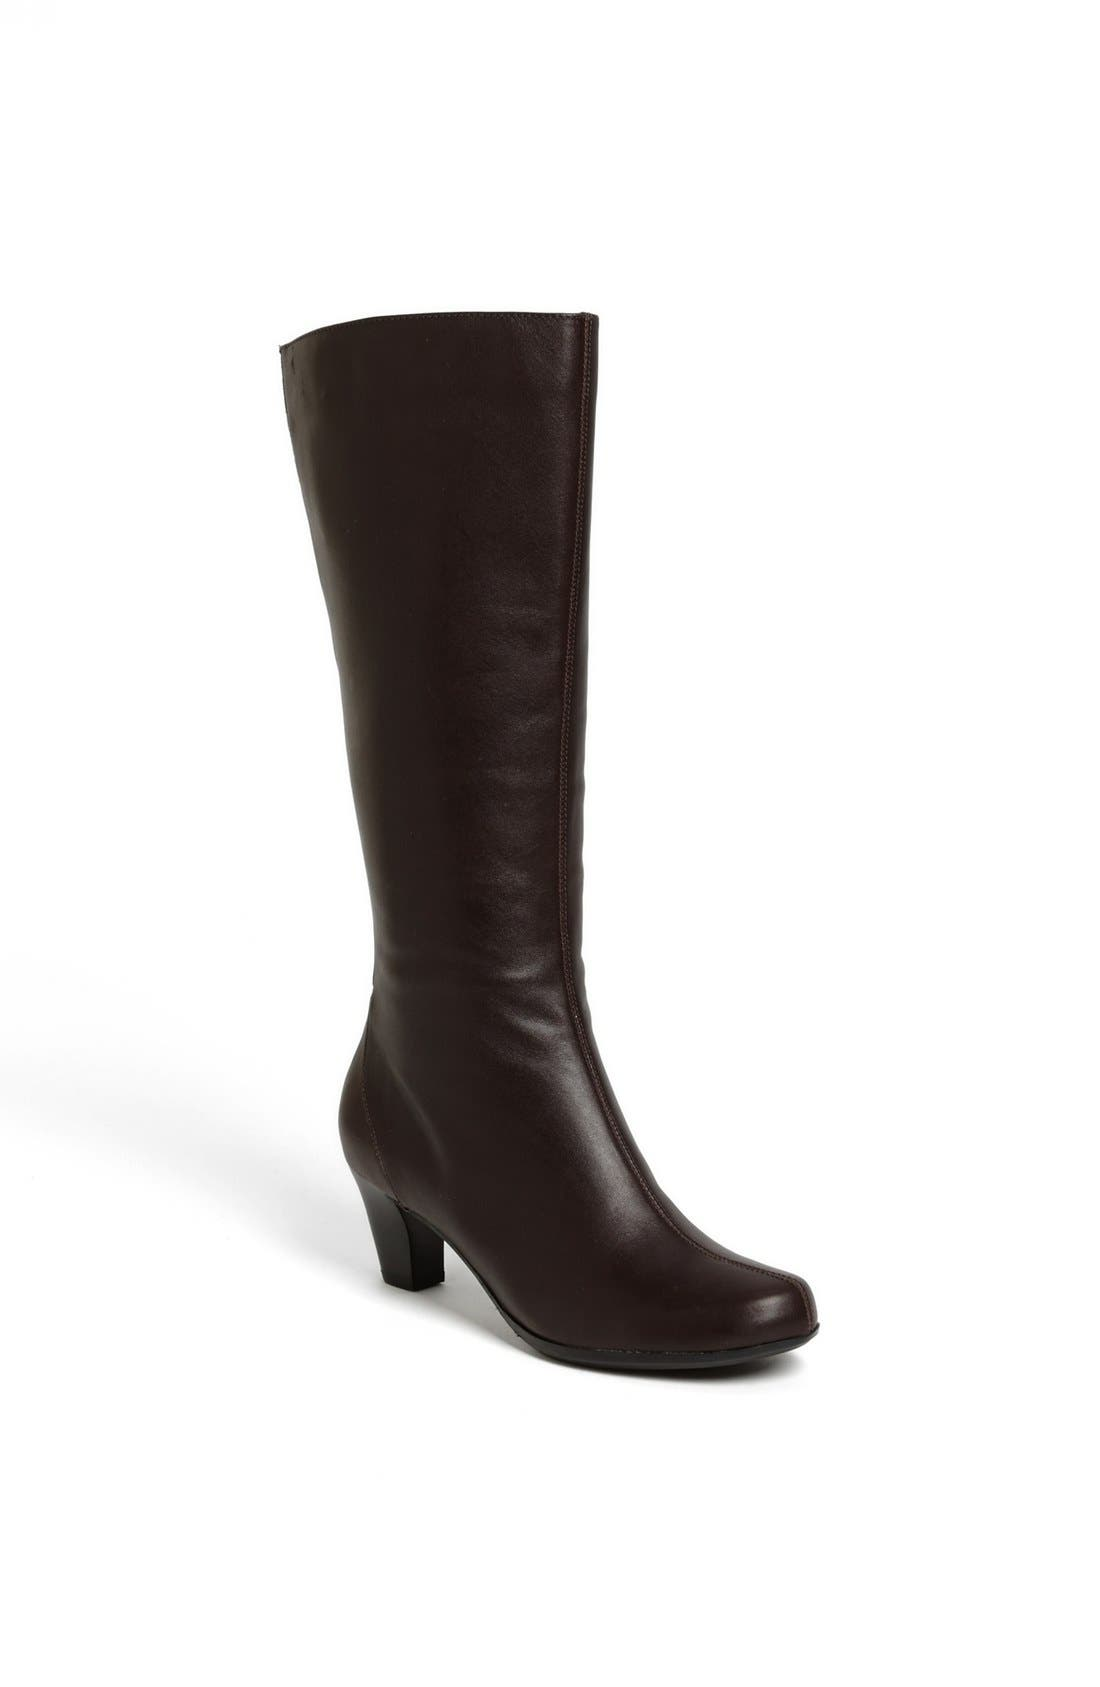 Alternate Image 1 Selected - Aetrex 'Alexis' Boot